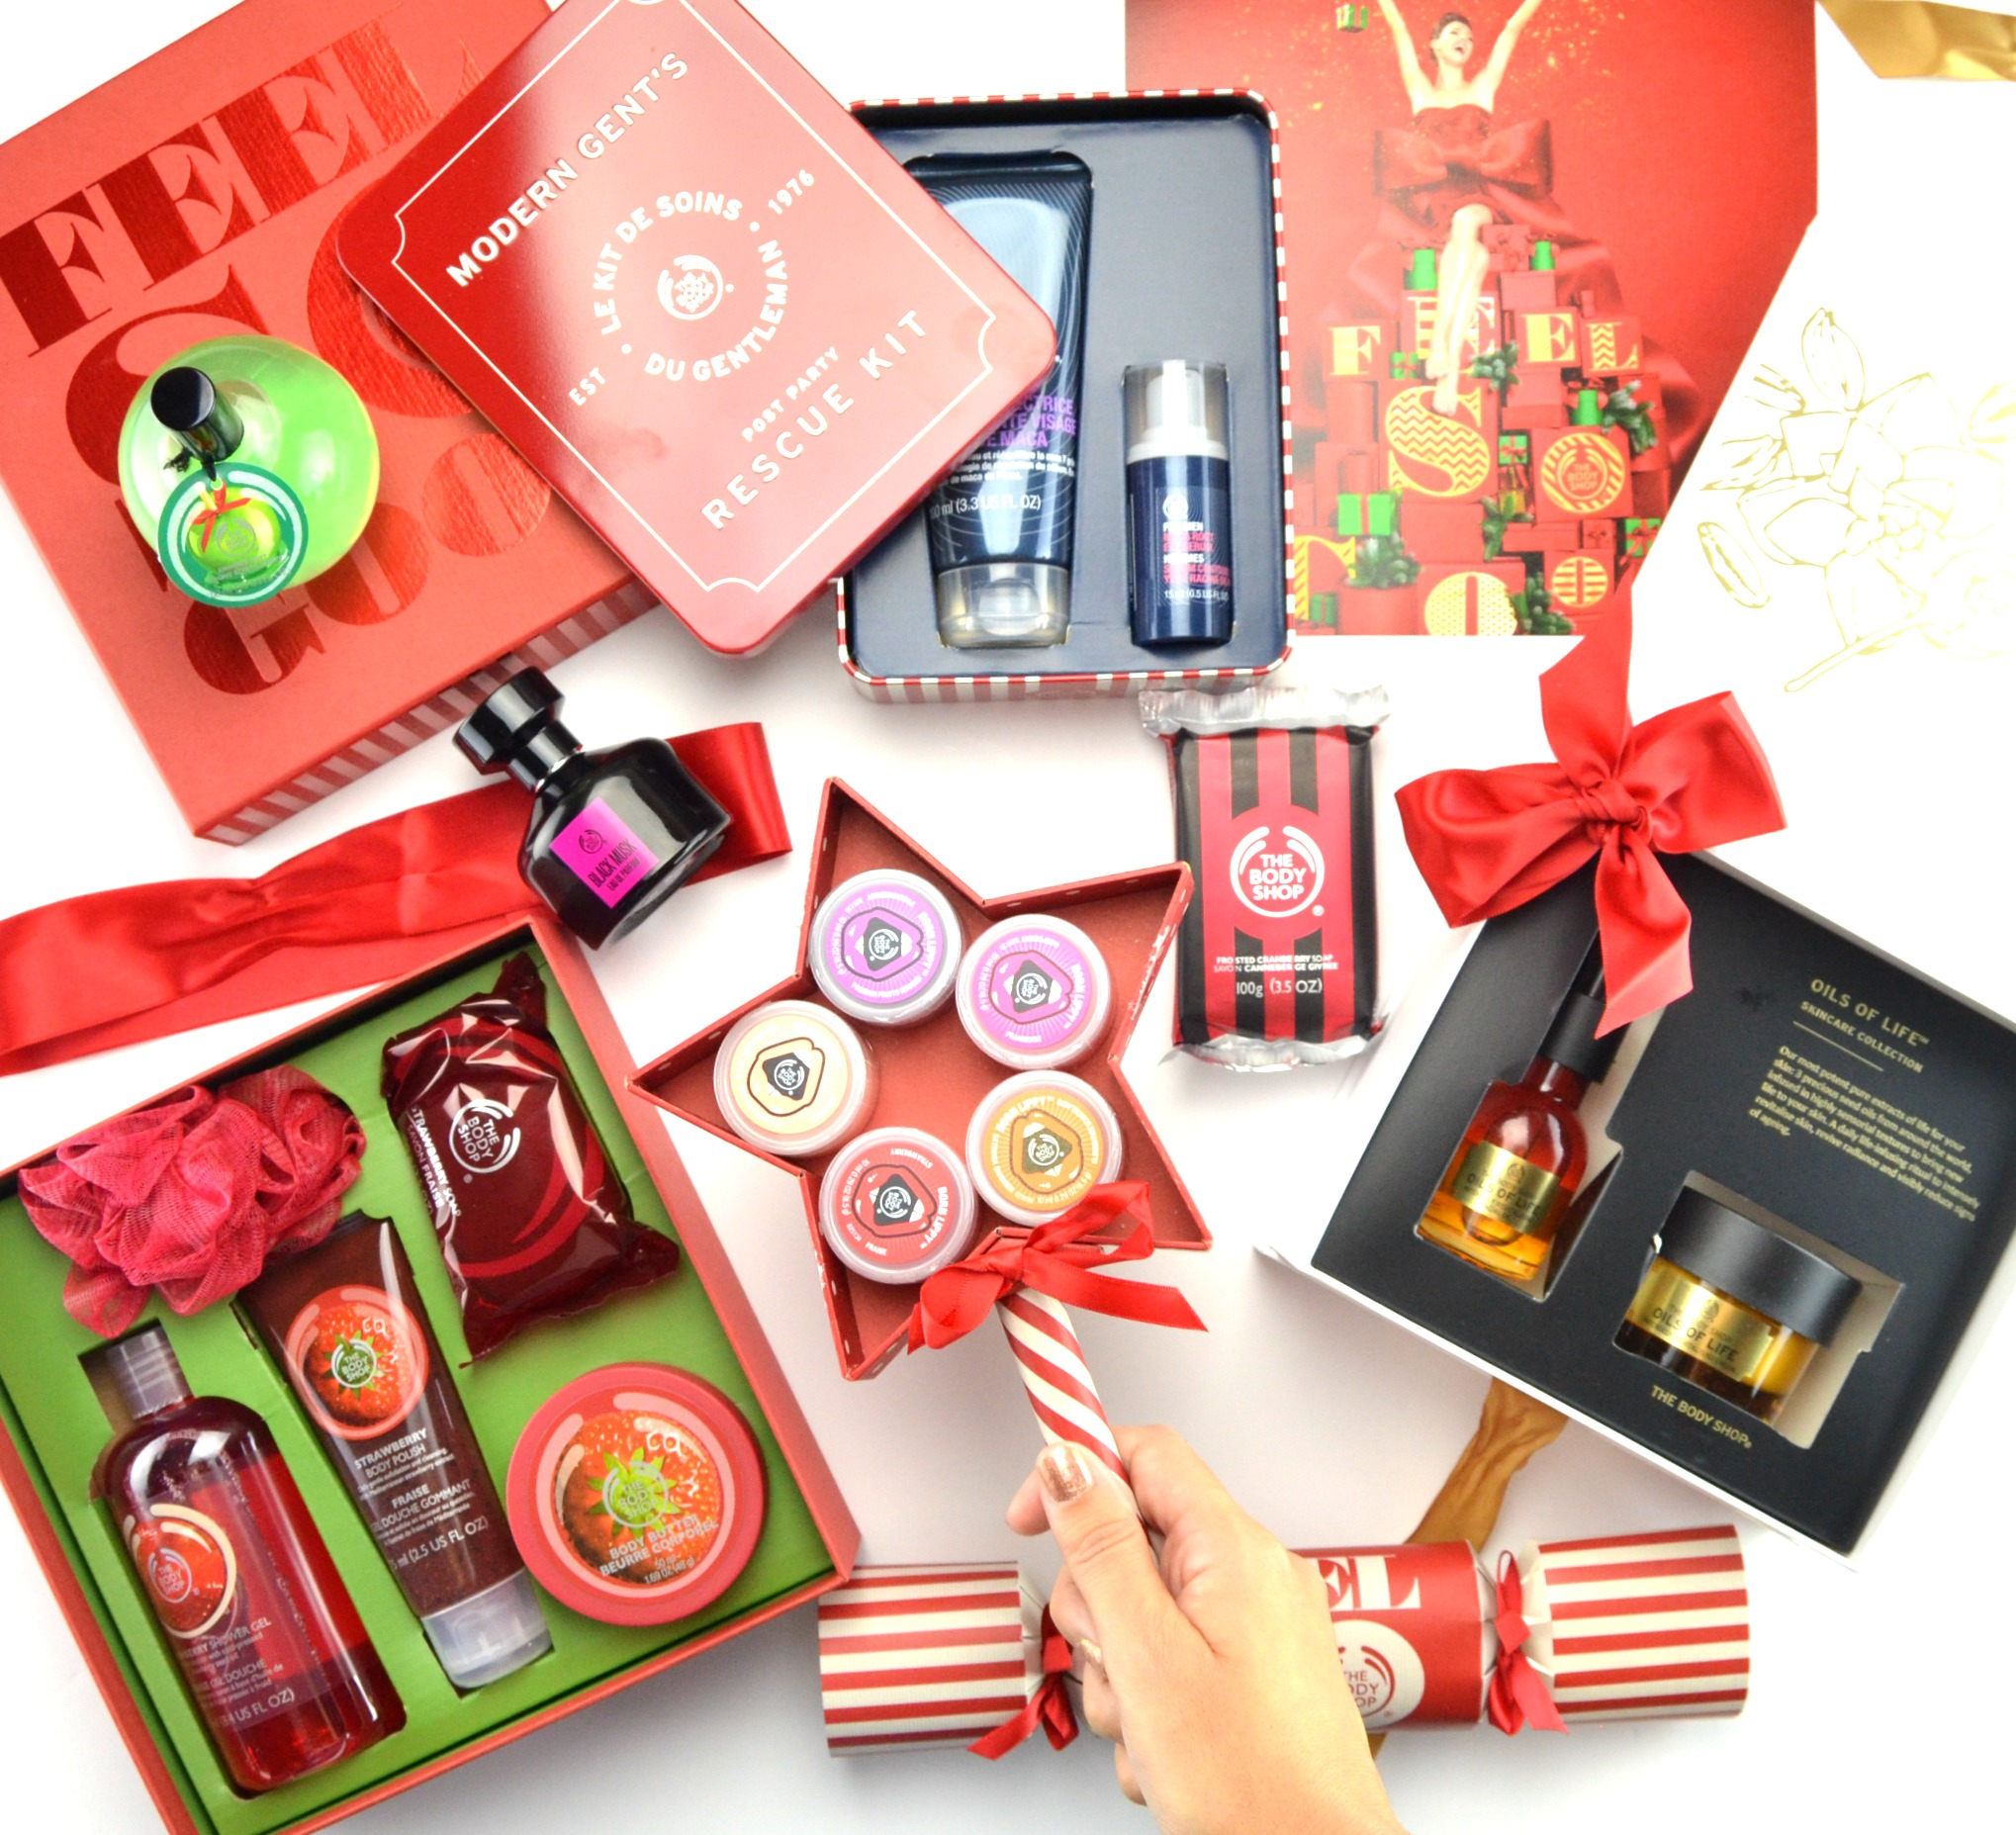 The-Body-Shop-Holiday-Gift-Sets-1.jpg